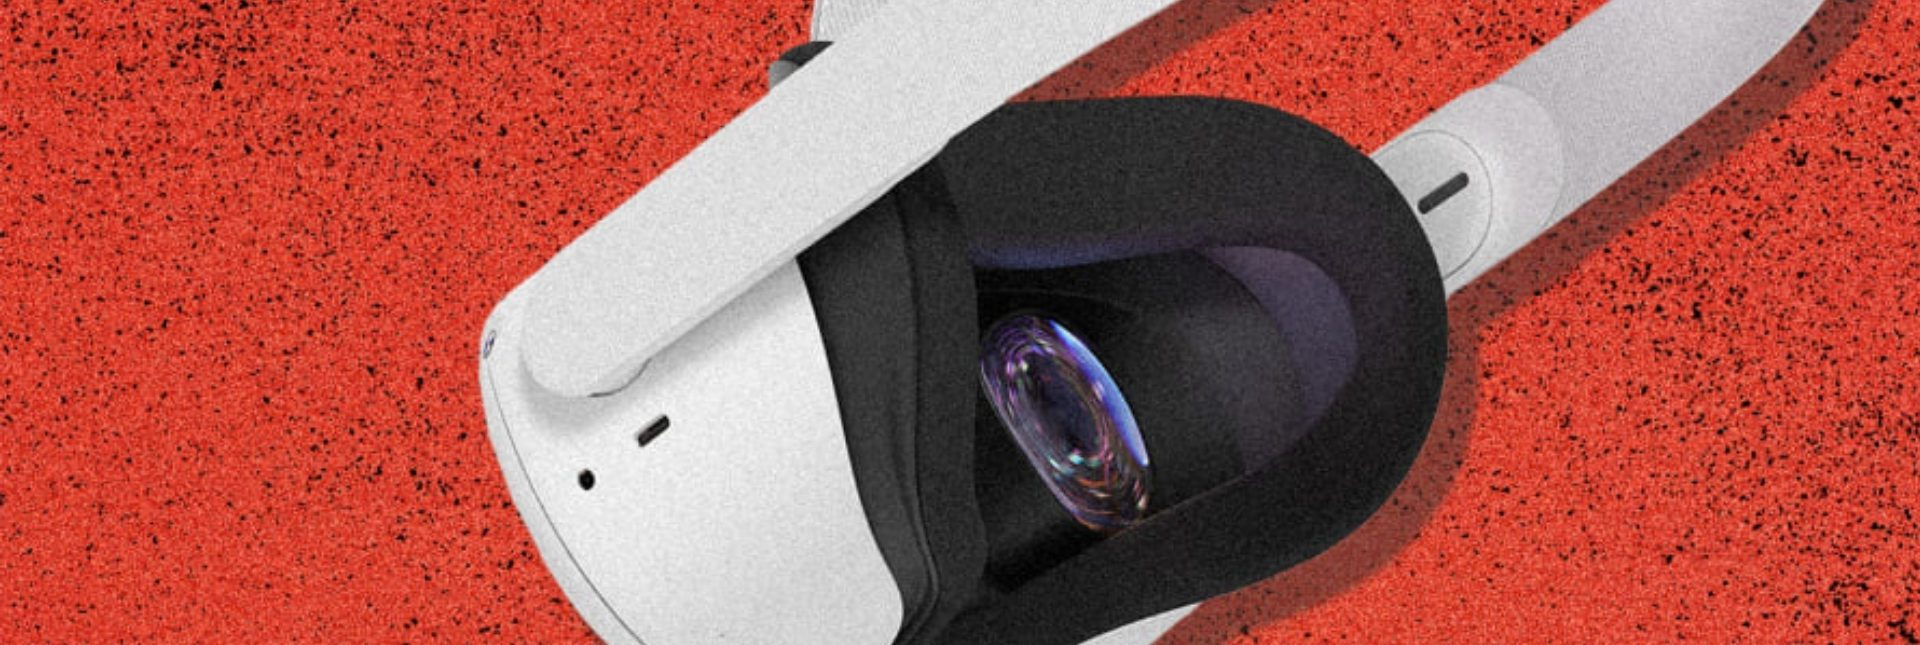 Oculus Issues Voluntary Quest 2 Recall Citing Problems With Facial Cushion